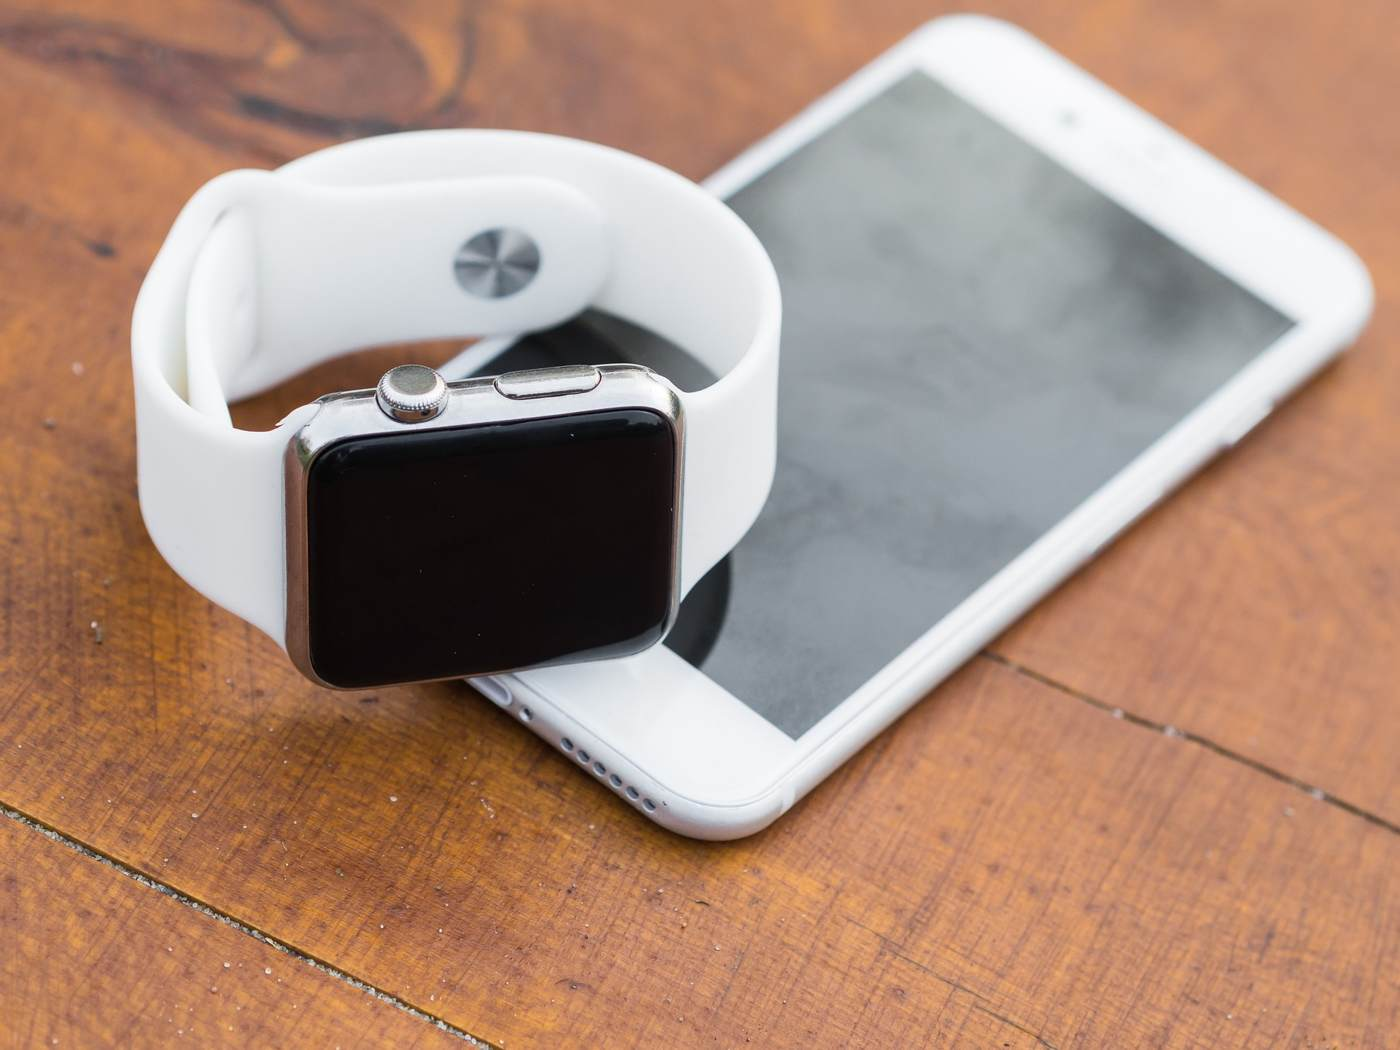 Apple watch for referees